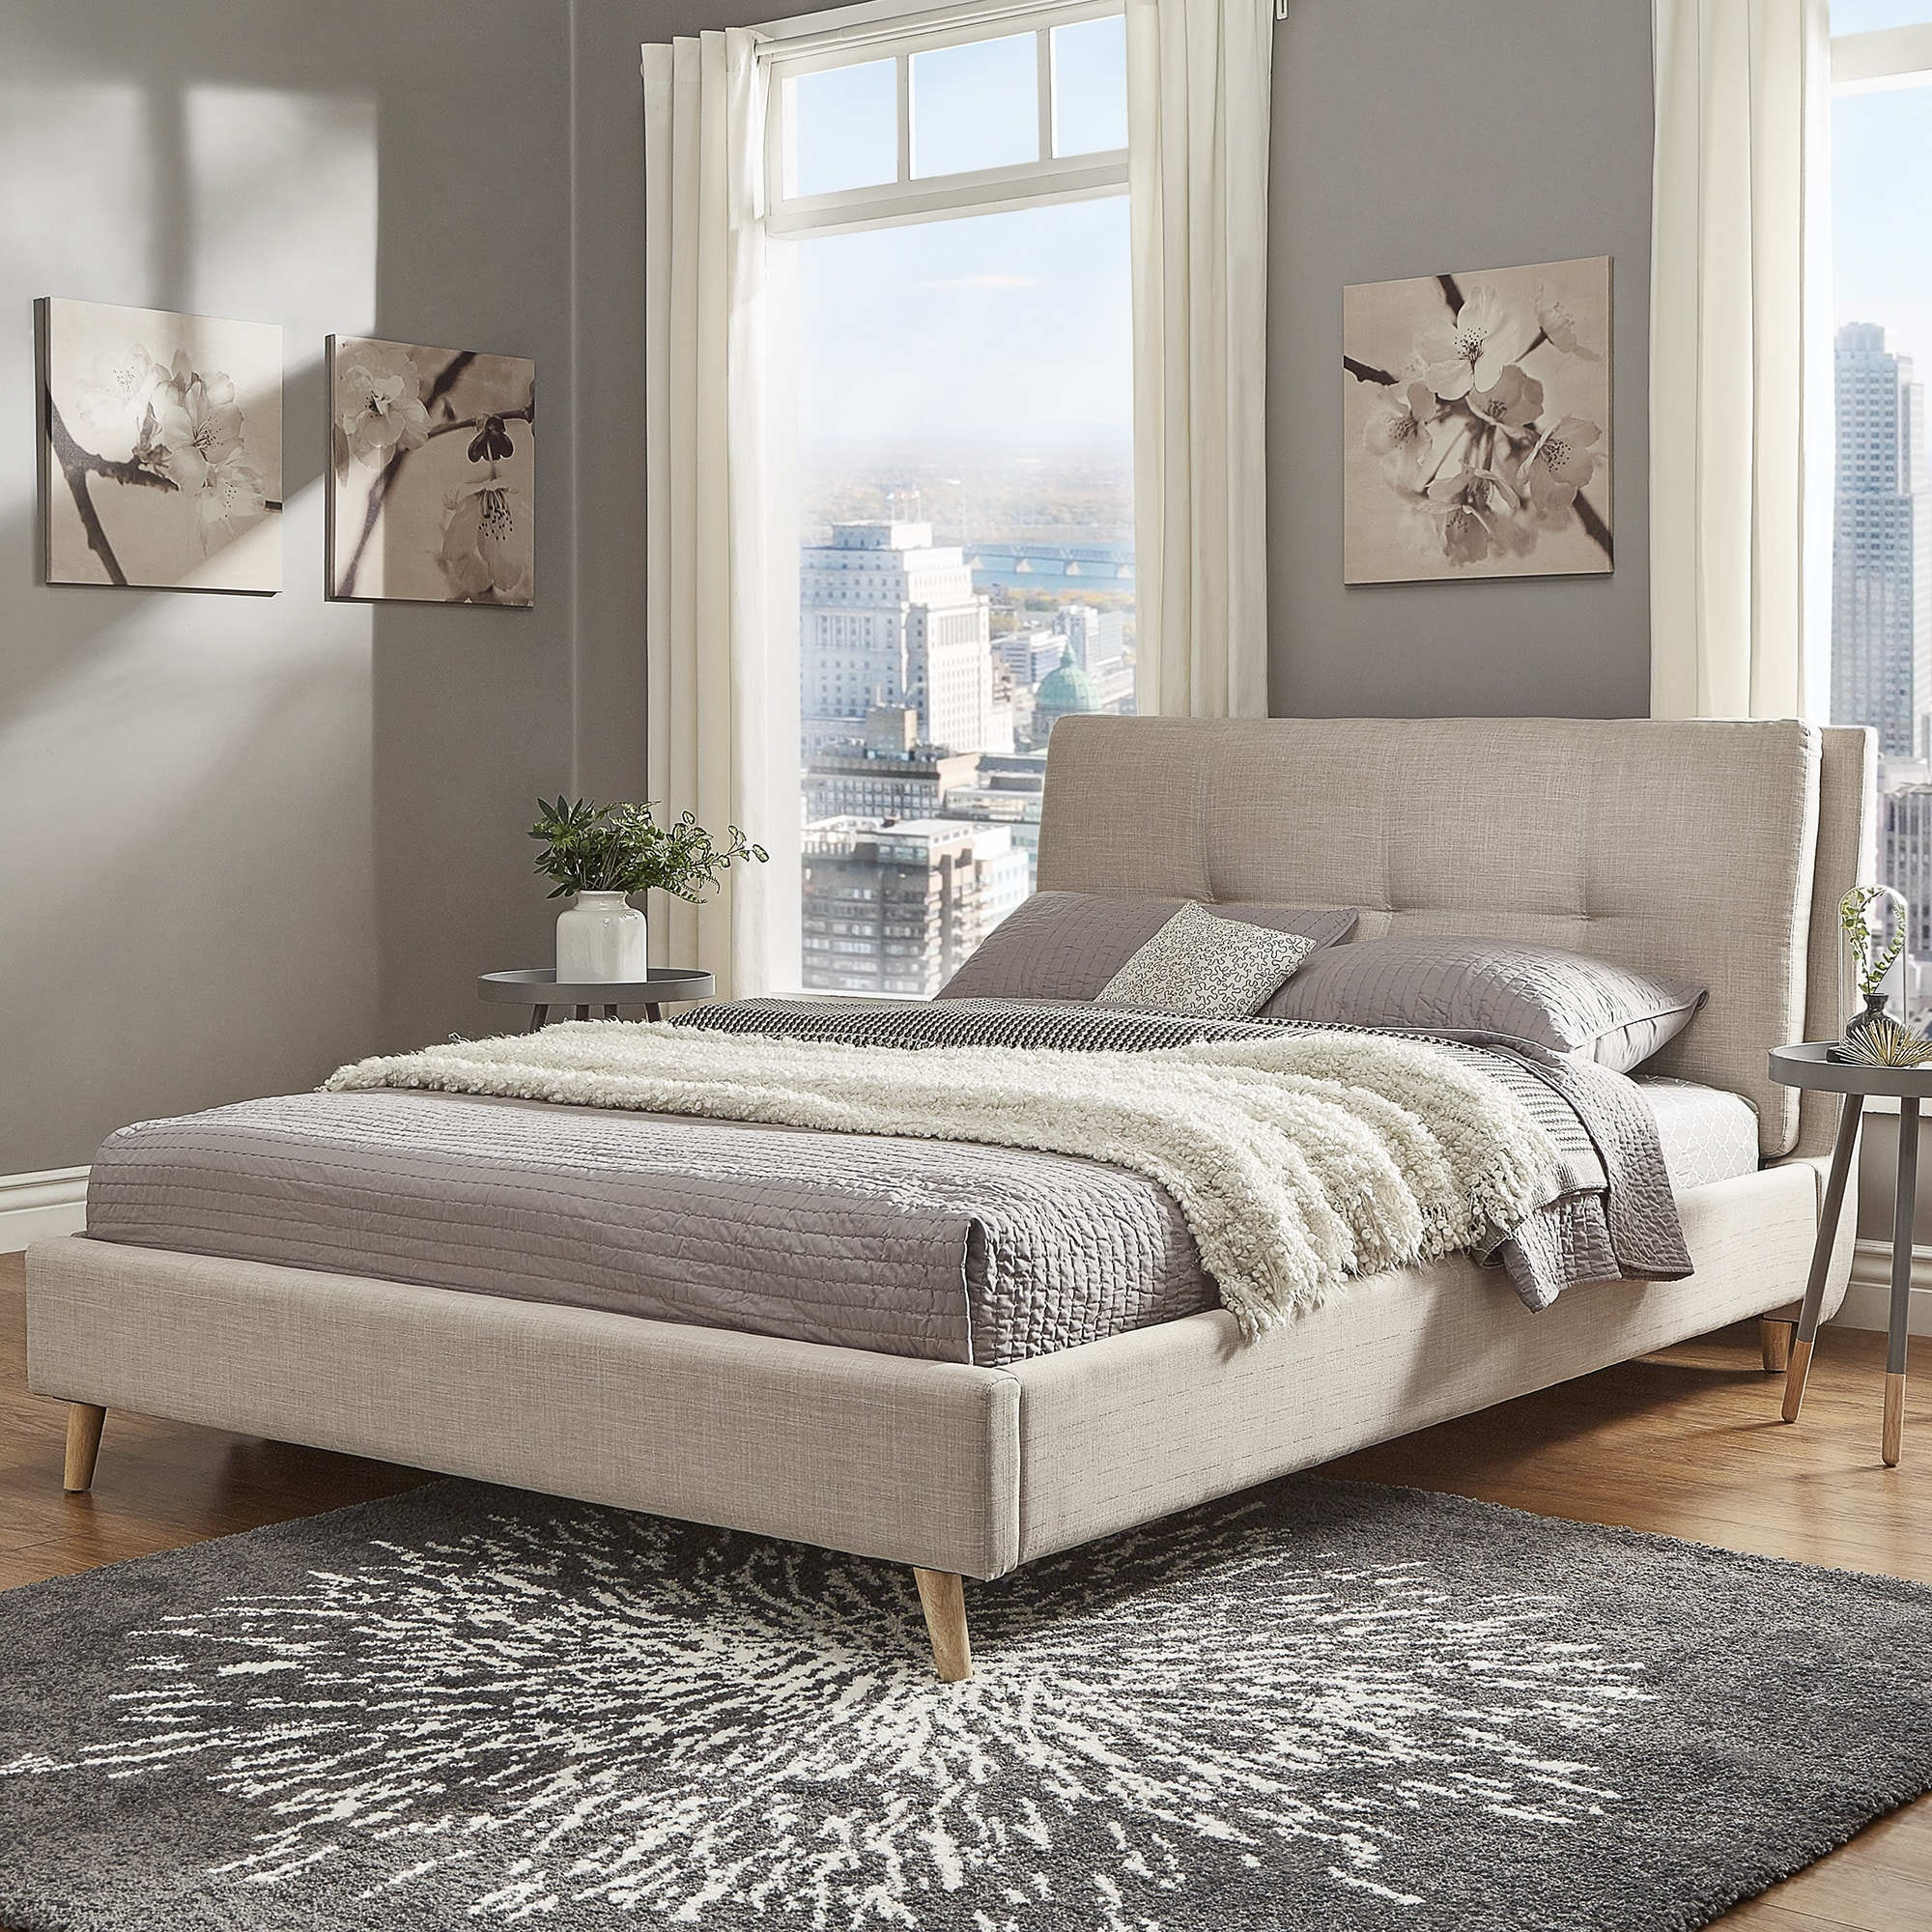 curved bed upholstered furniture with for platform xiorex headboard